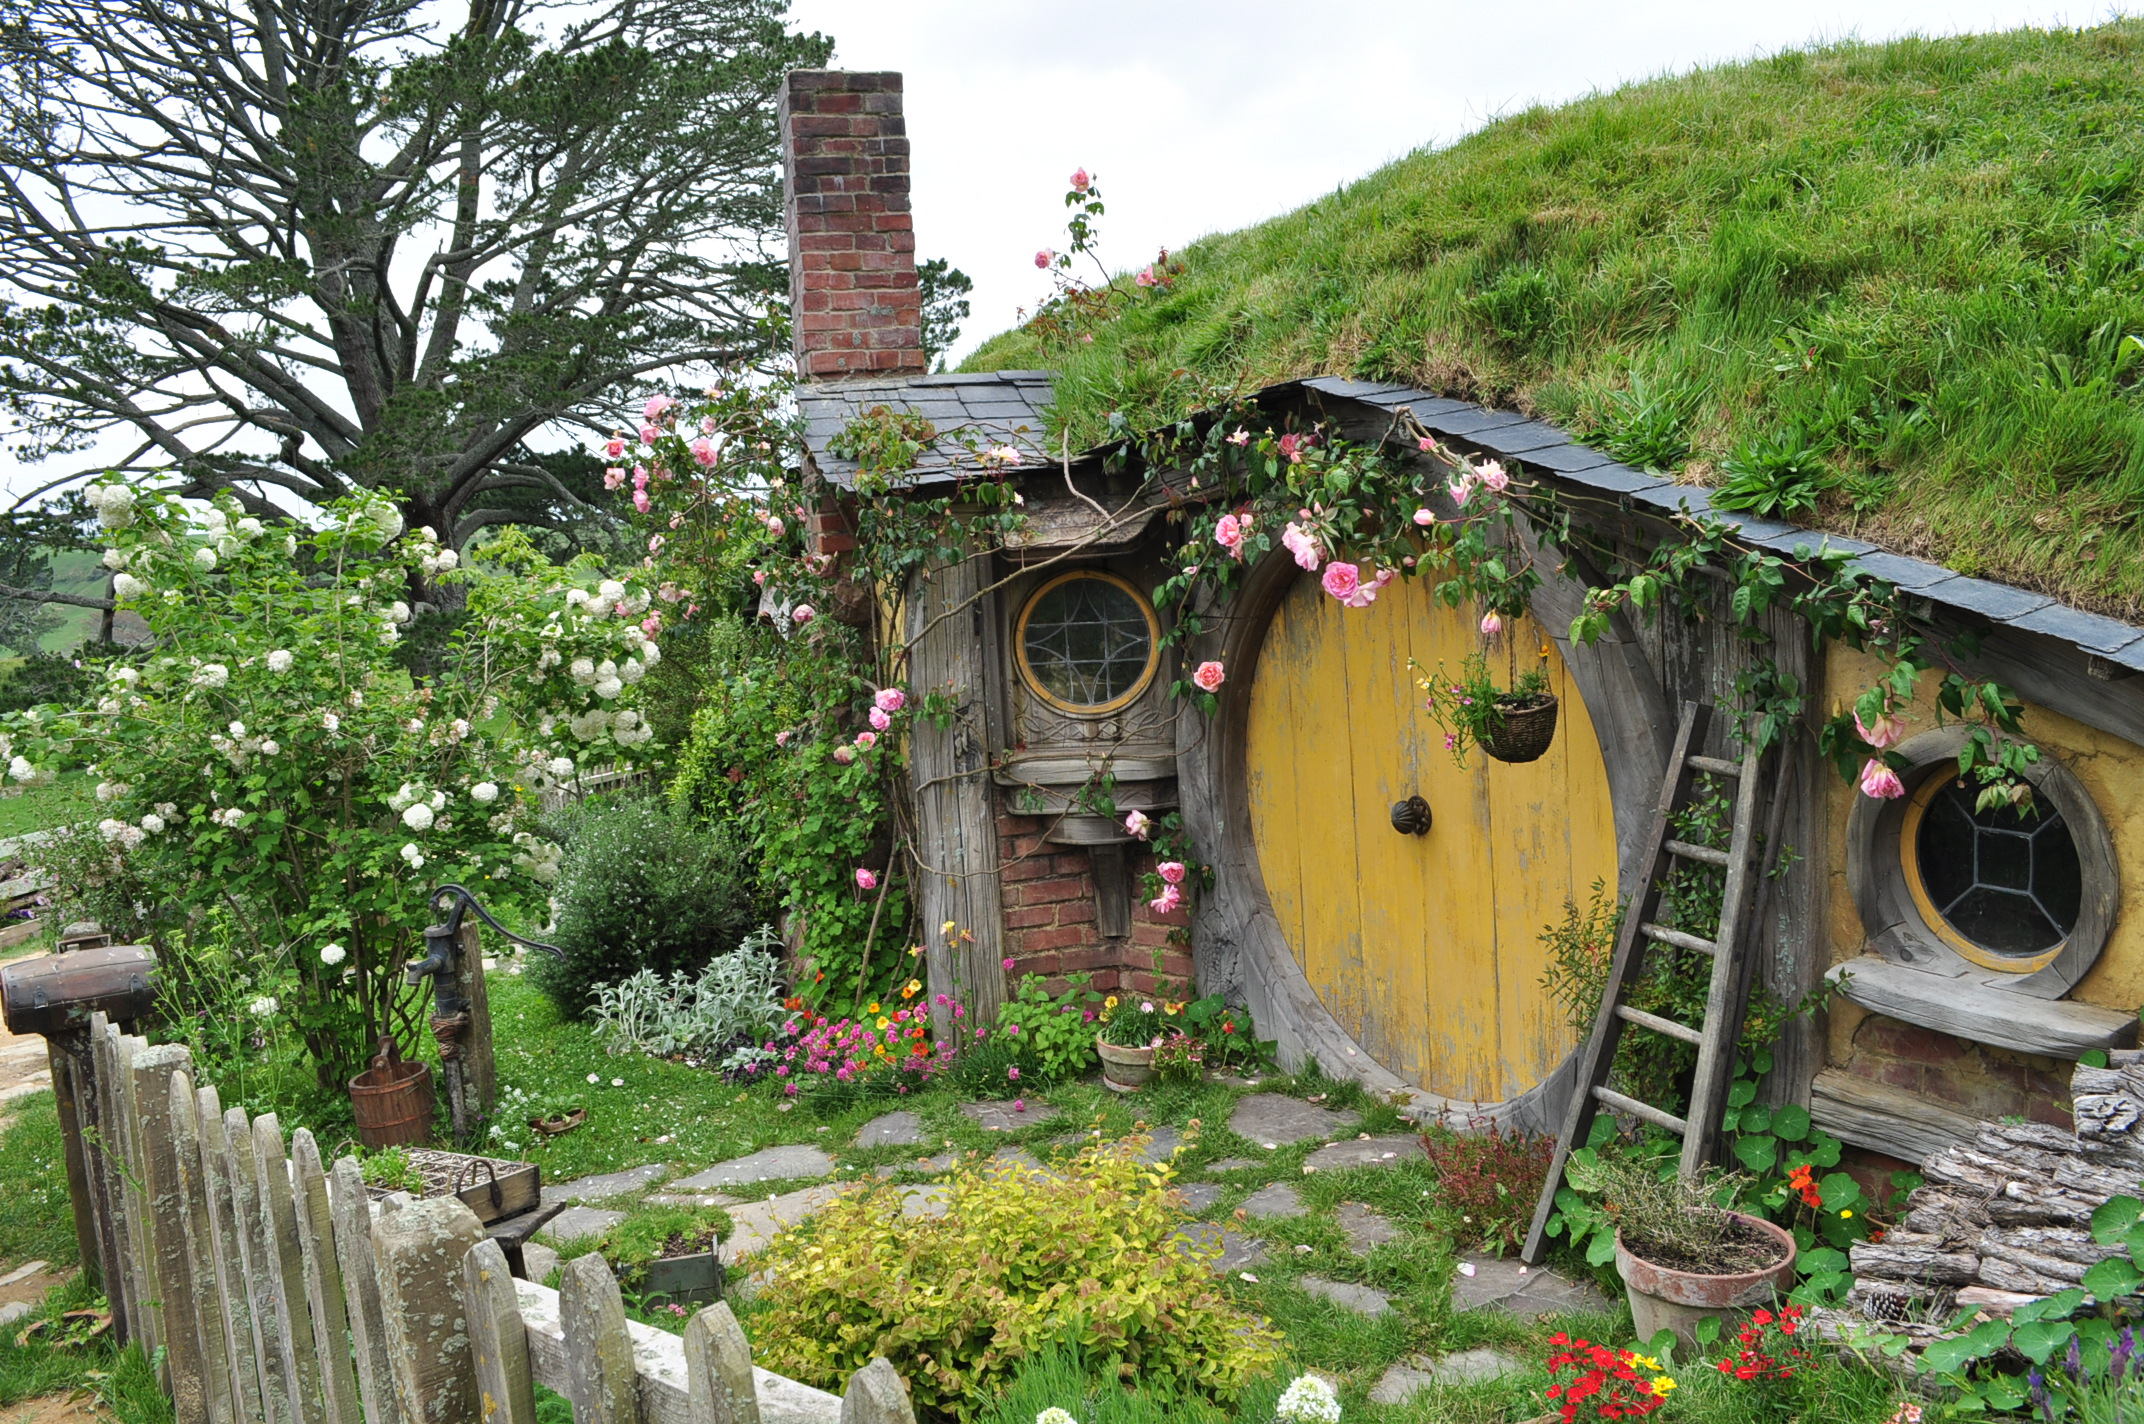 Samwise's House in Hobbiton by iRISSIEL